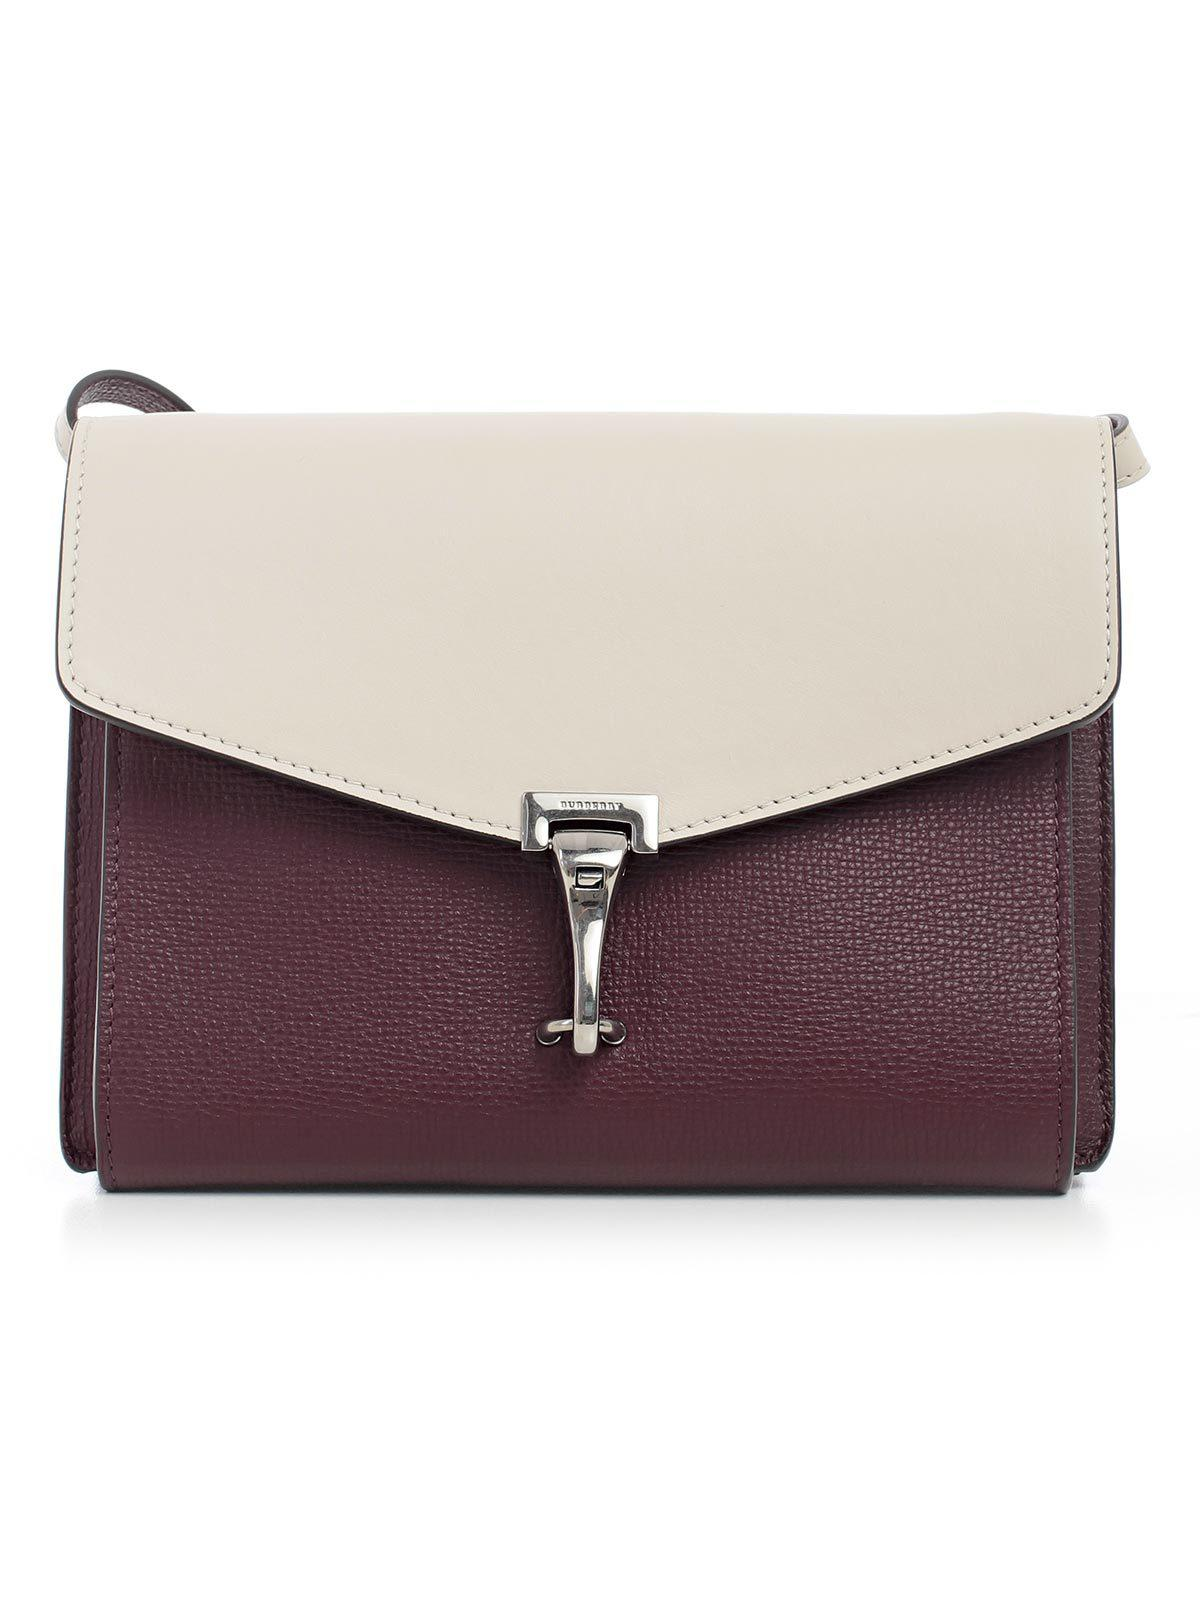 9b20bc1a1dc4 Burberry Two-tone Crossbody Bag in Purple - Lyst